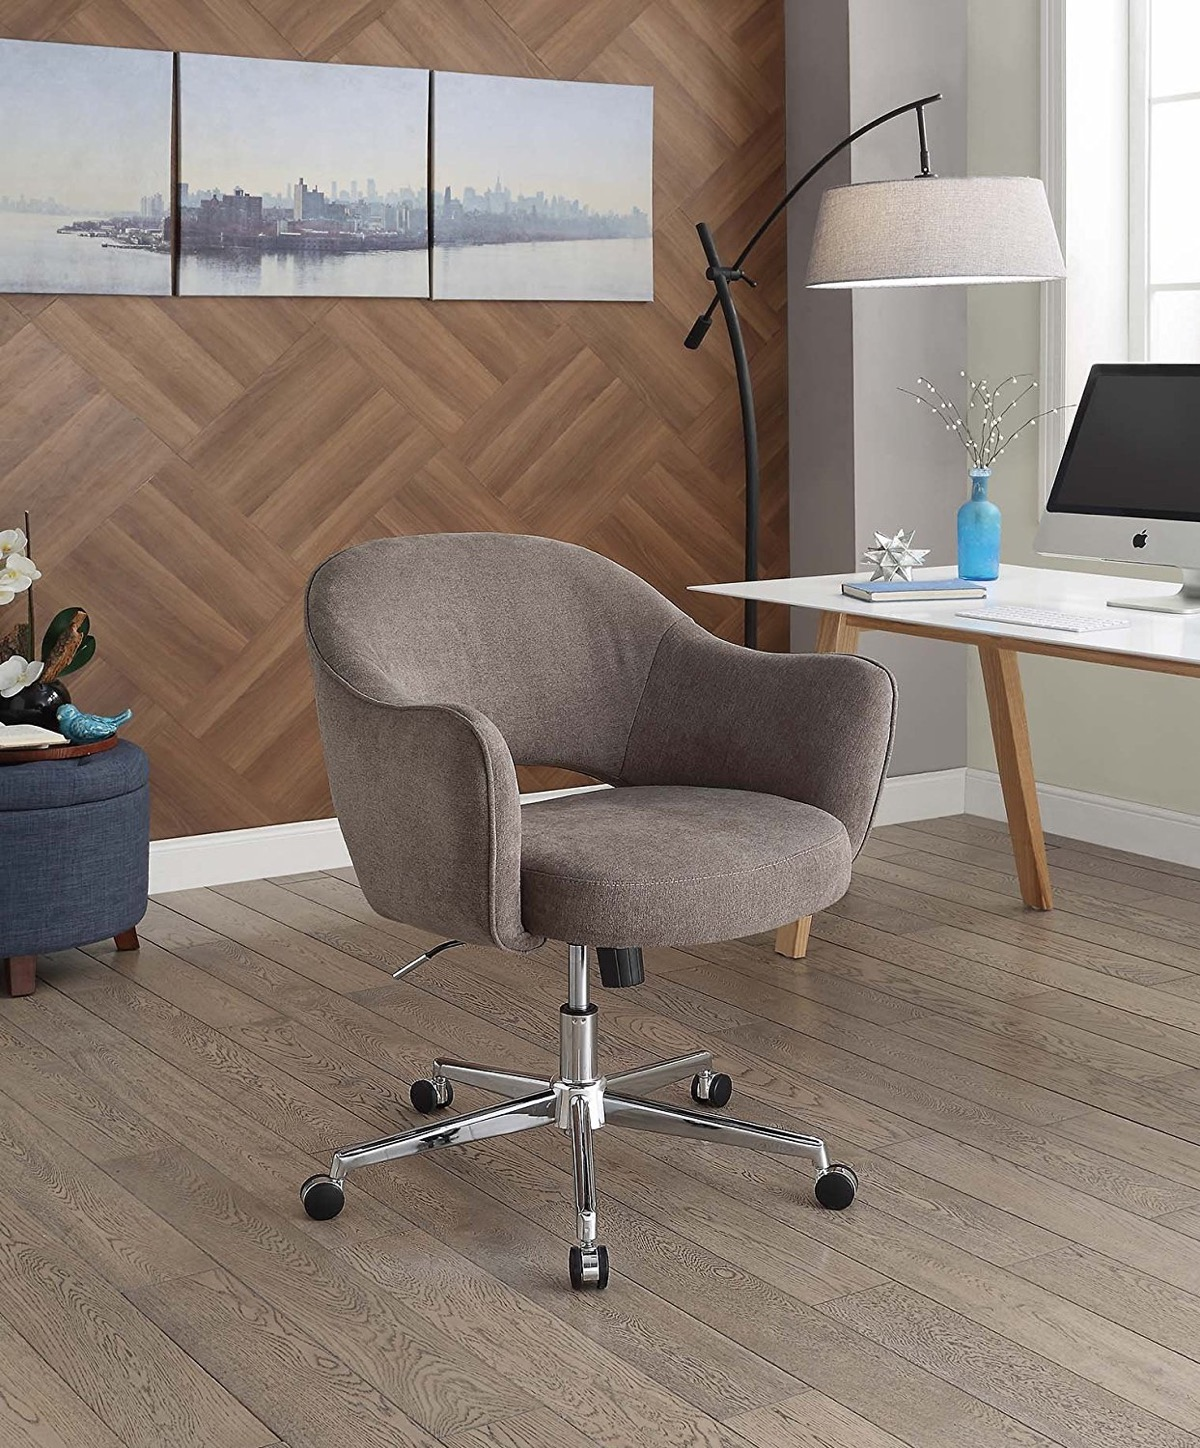 cloth-coloured-with-swivel-function-cute-desk-chairs